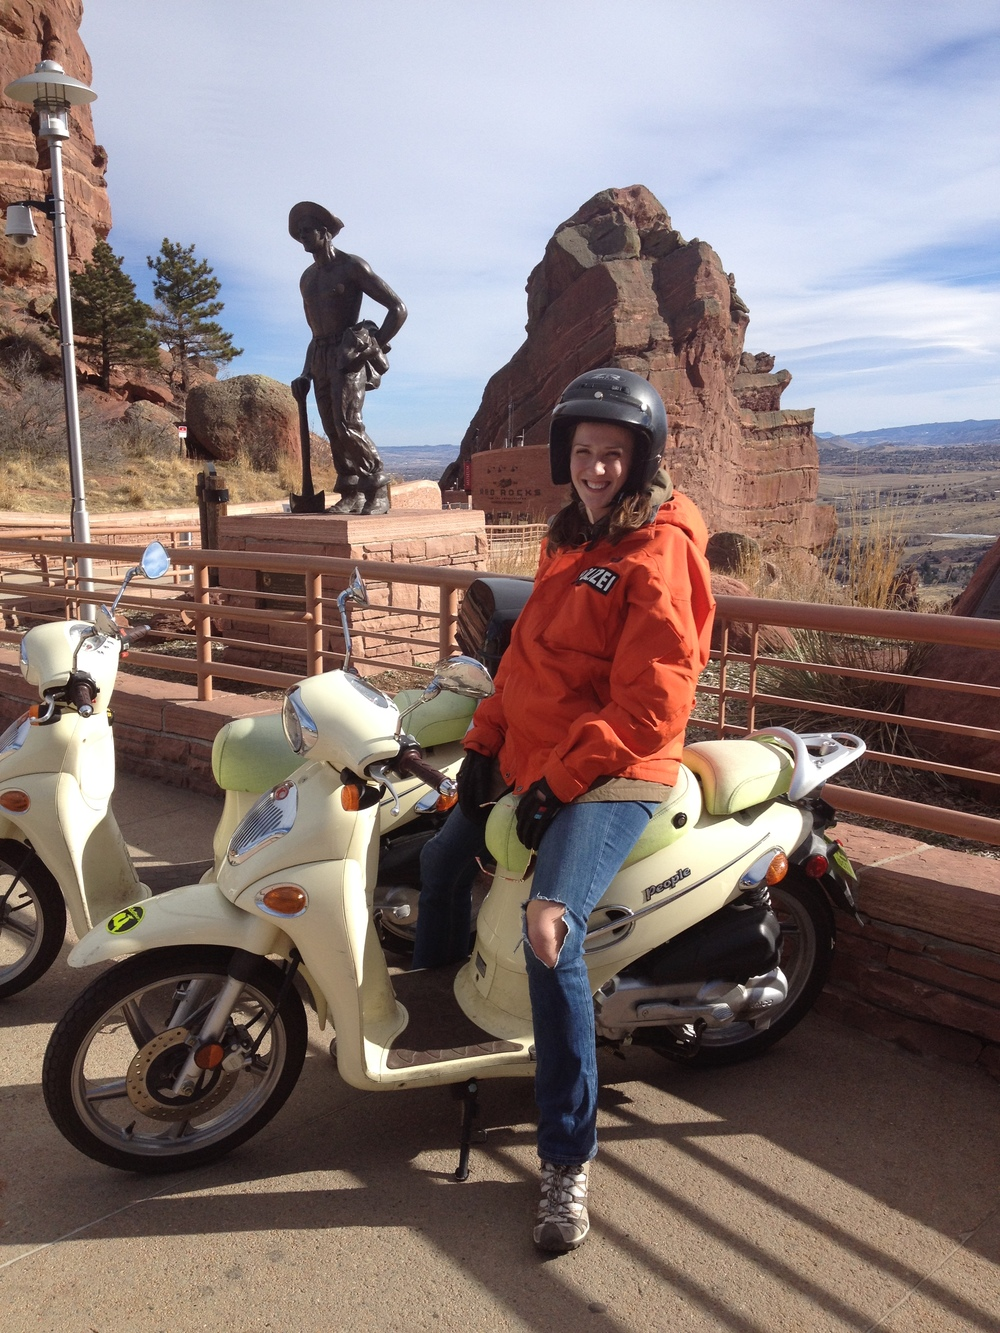 Confident and competent riders can ride to Red Rocks Amphitheatre.